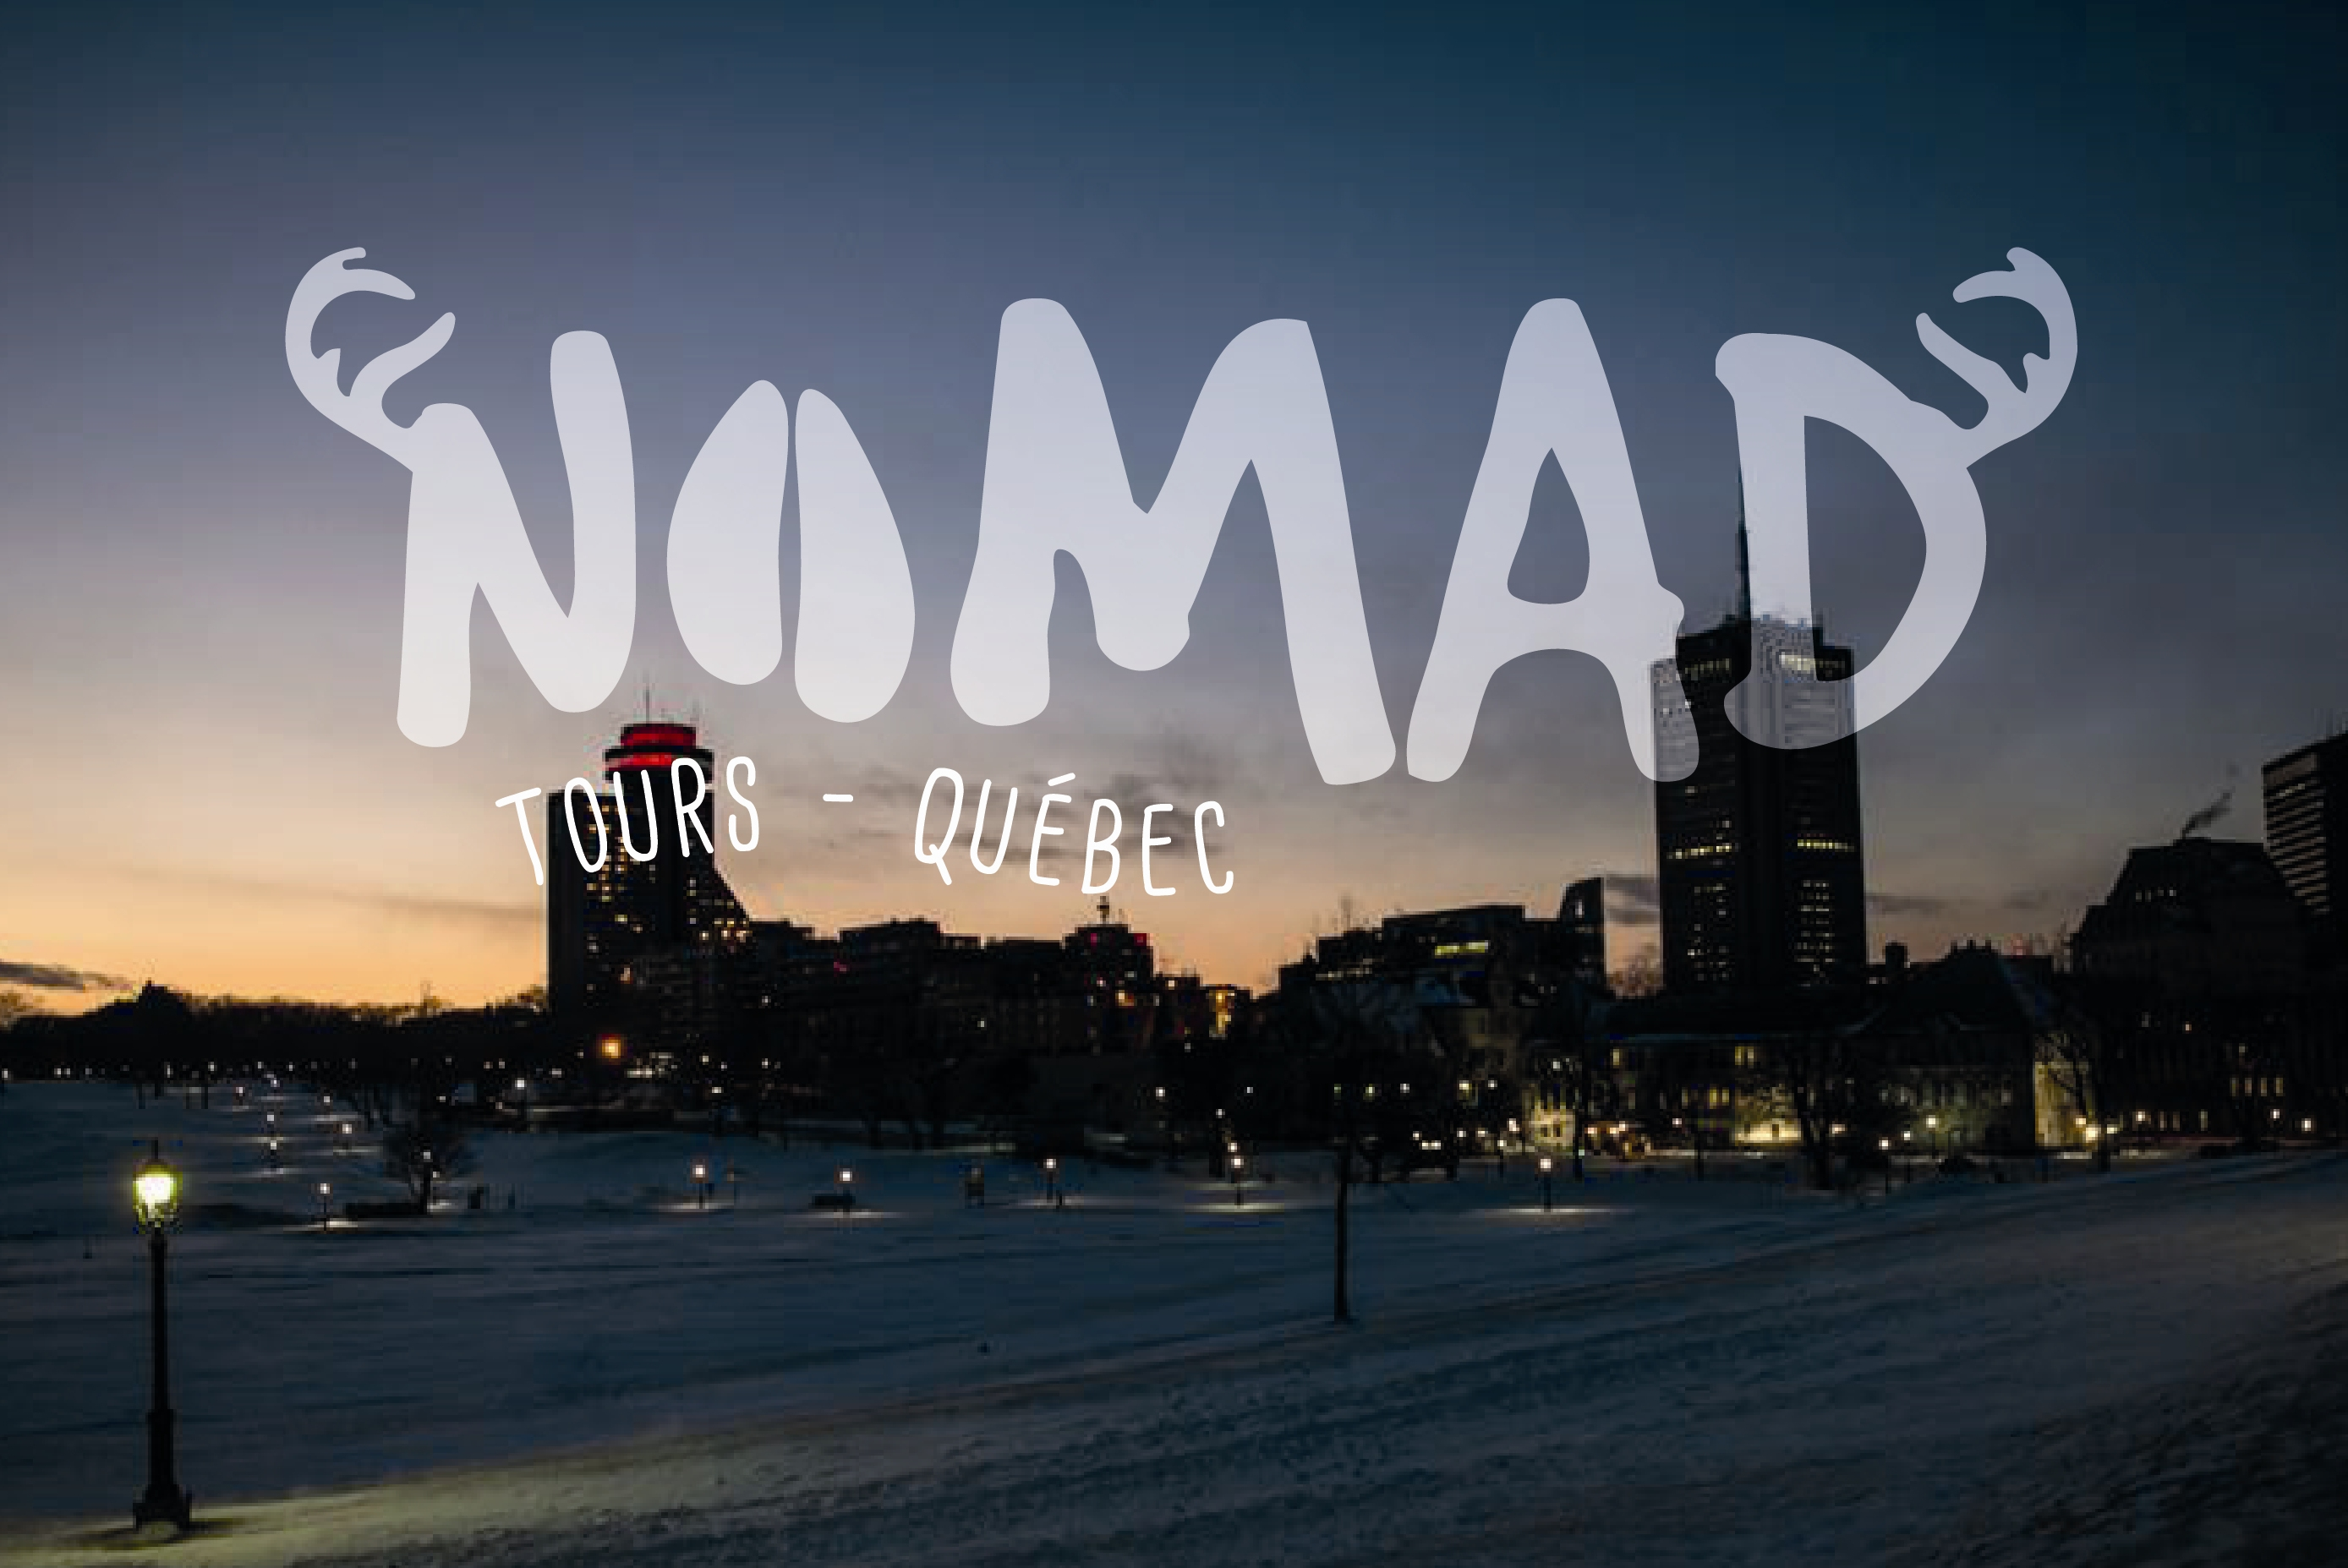 Nomad Tours Quebec